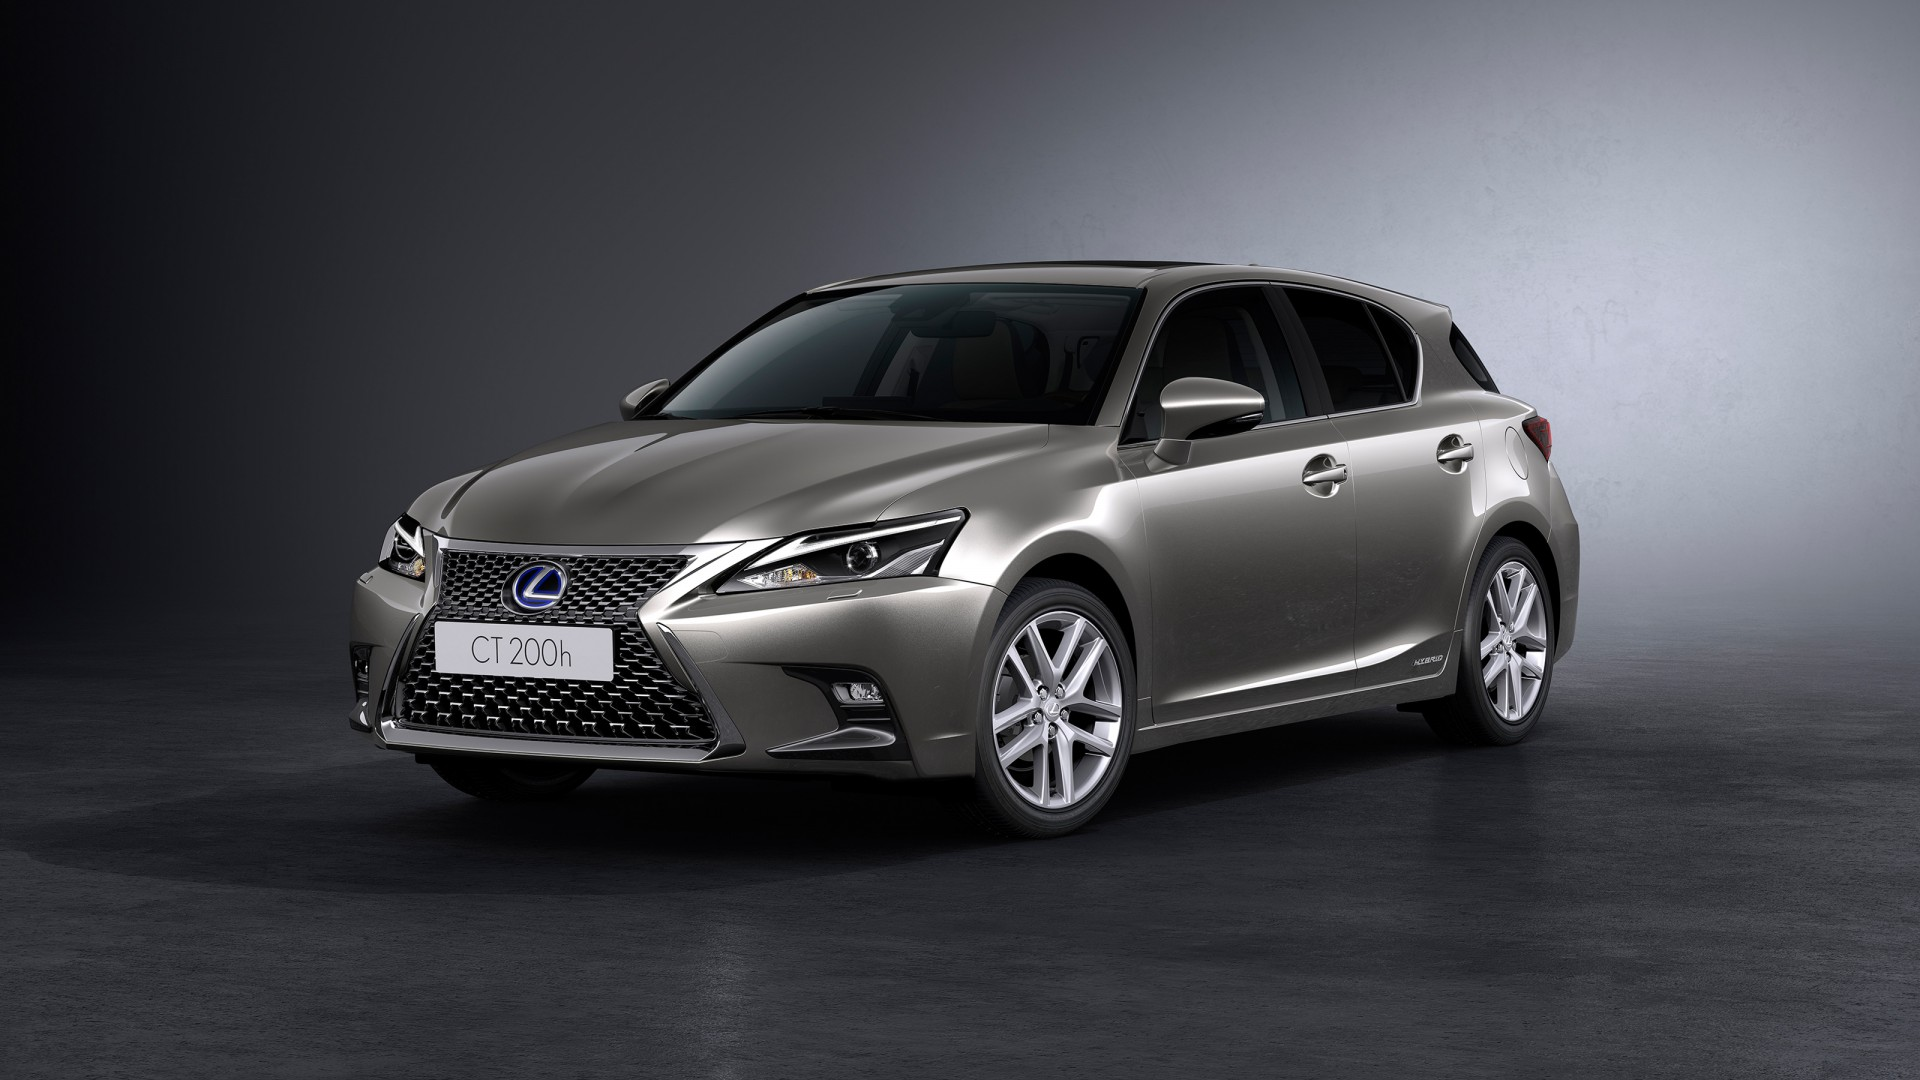 Lexus Ct 200h 2017 Wallpaper Hd Car Wallpapers Id 7848